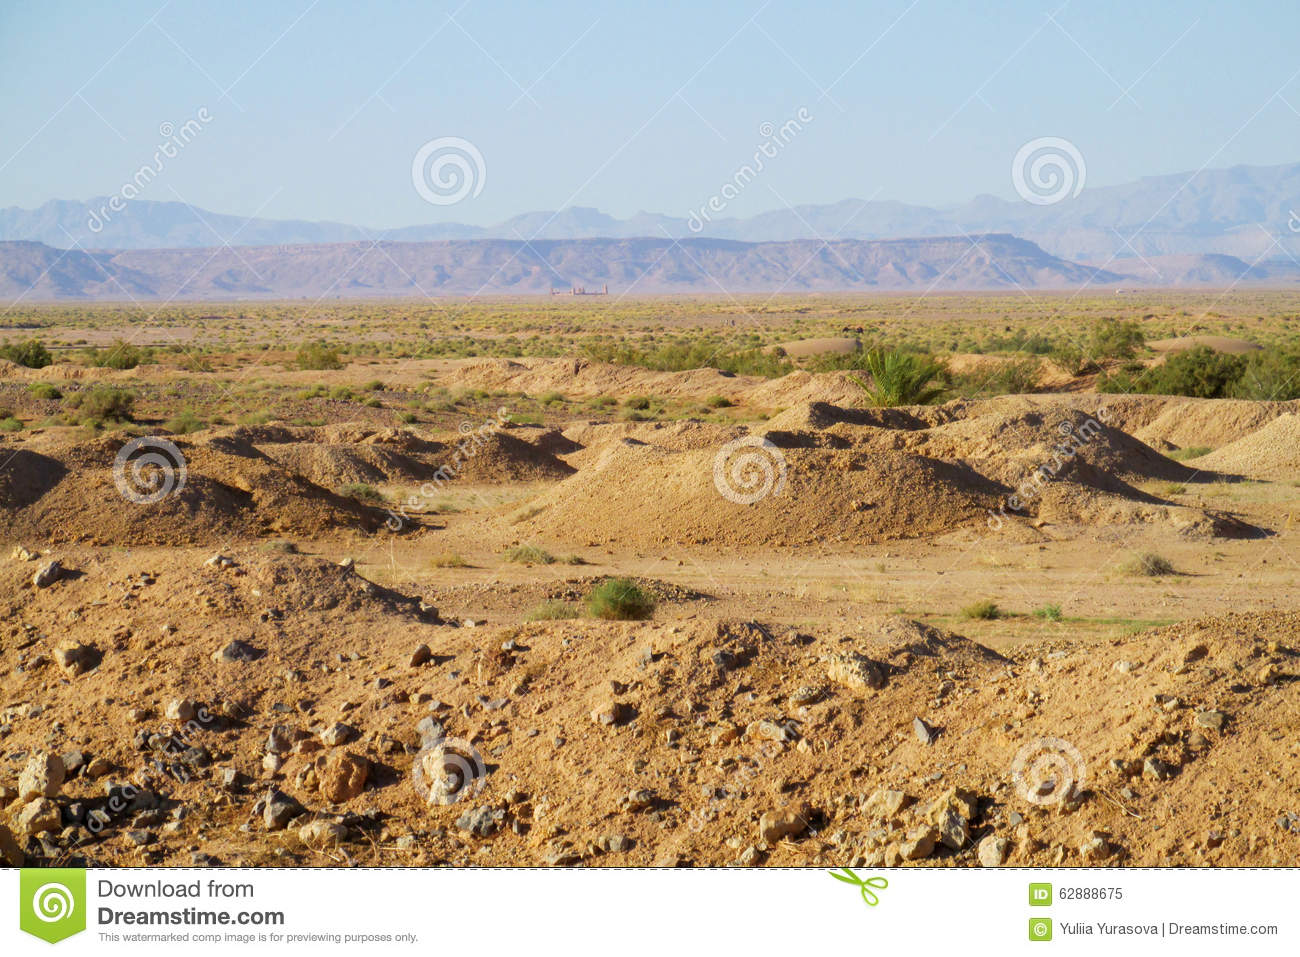 Desert Landscape And Mountains On Horizon Stock Image - Image of